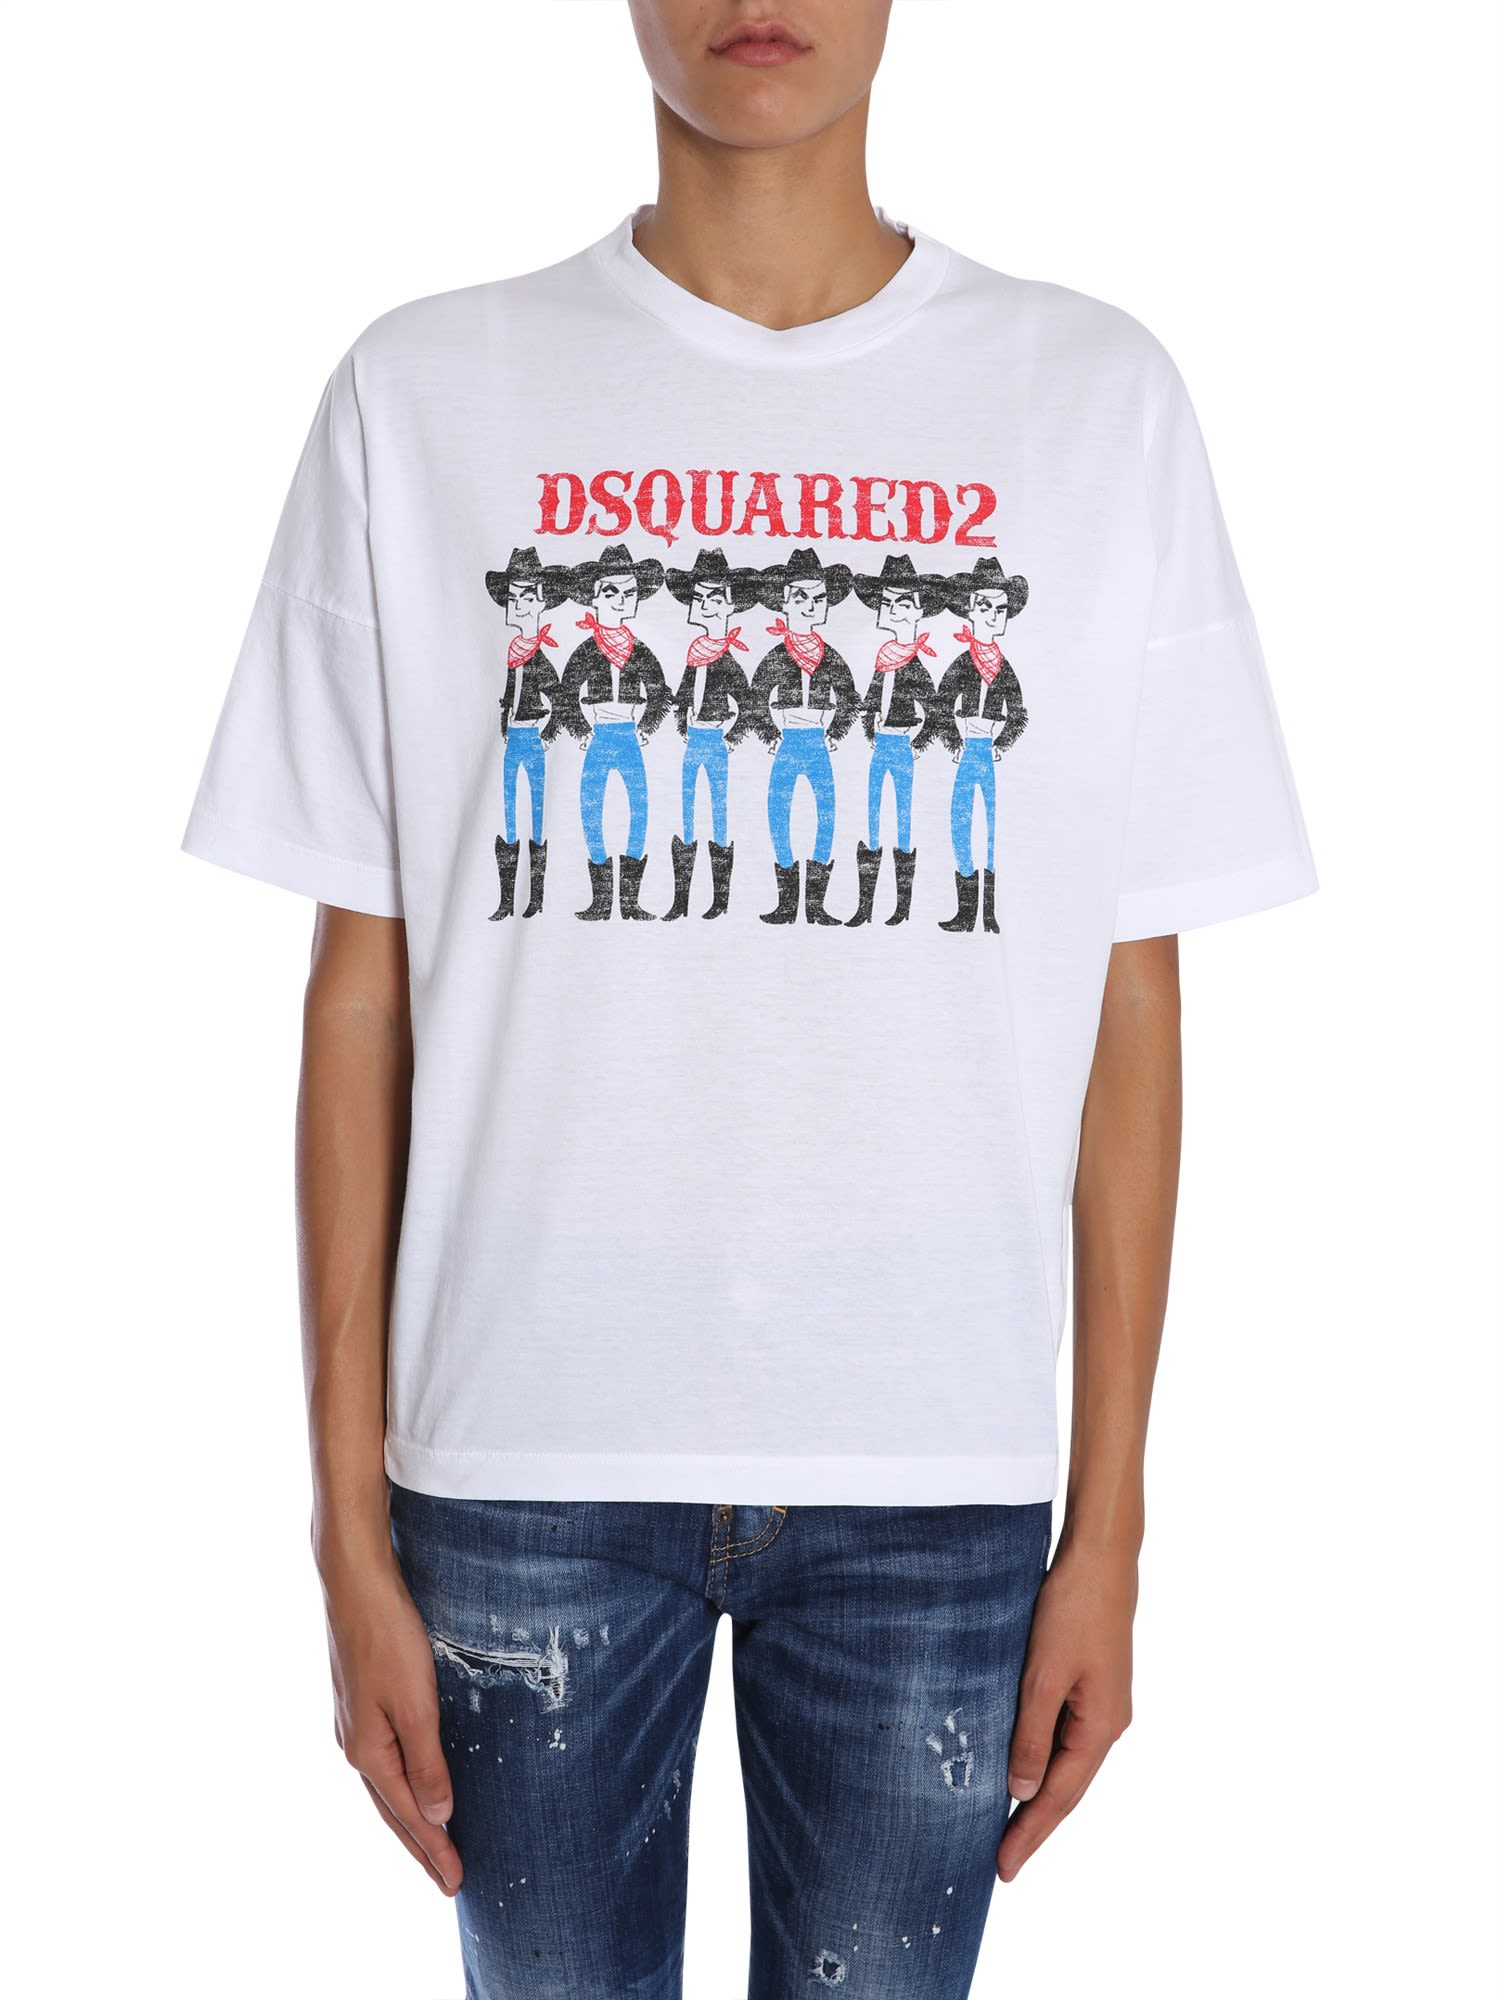 LEISURE FIT T-SHIRT